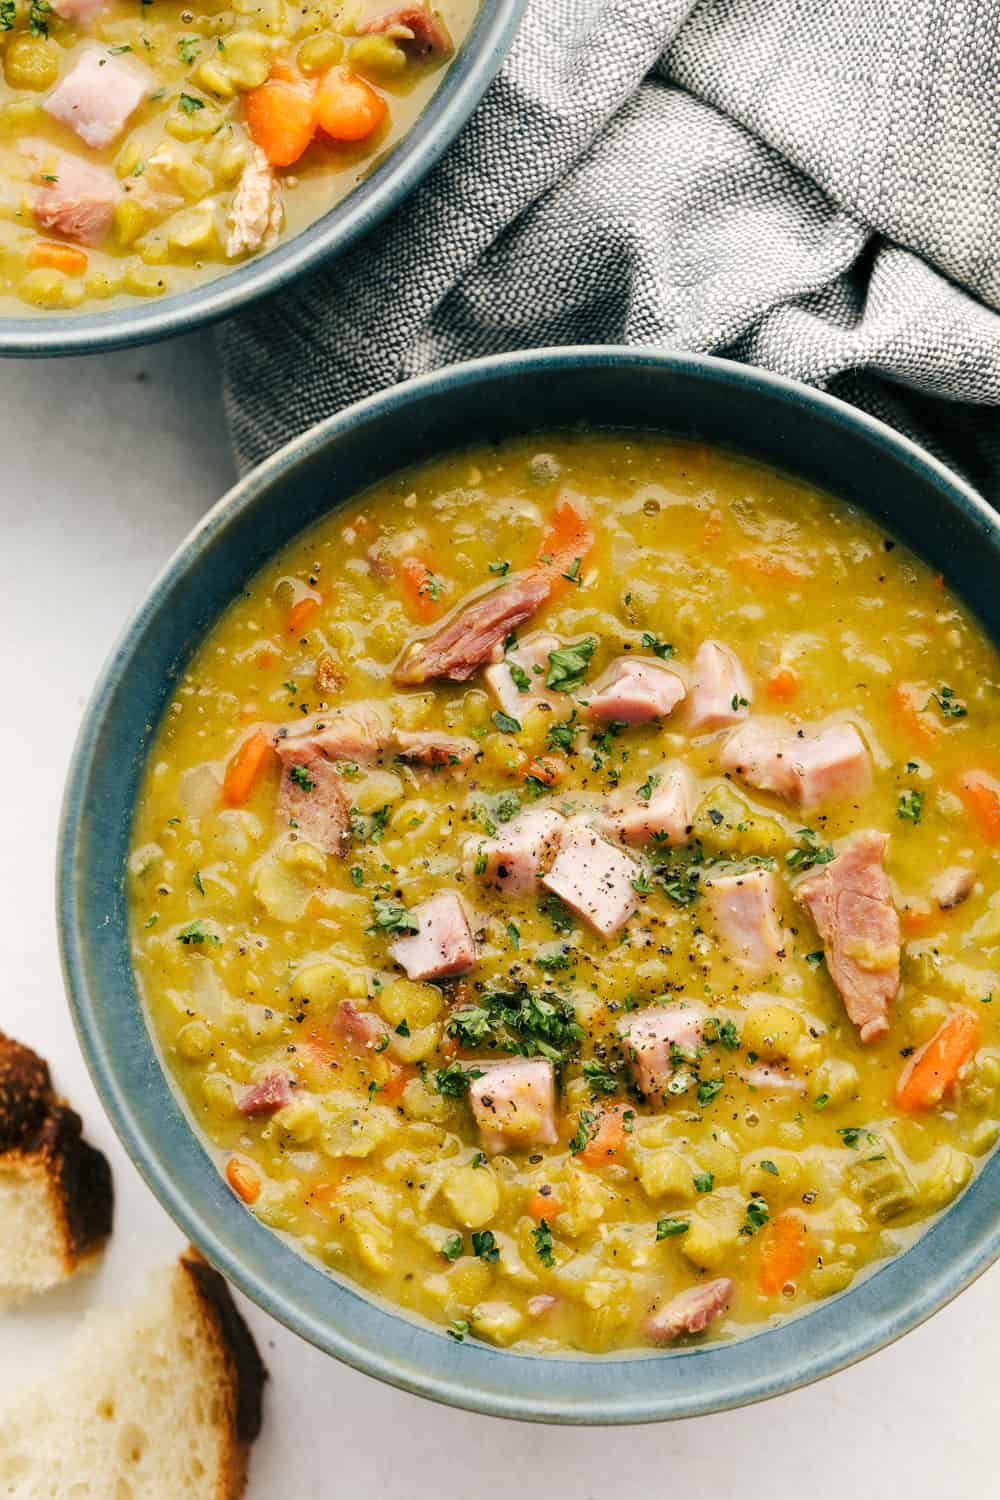 Homemade Split pea soup with ham in a bowl.